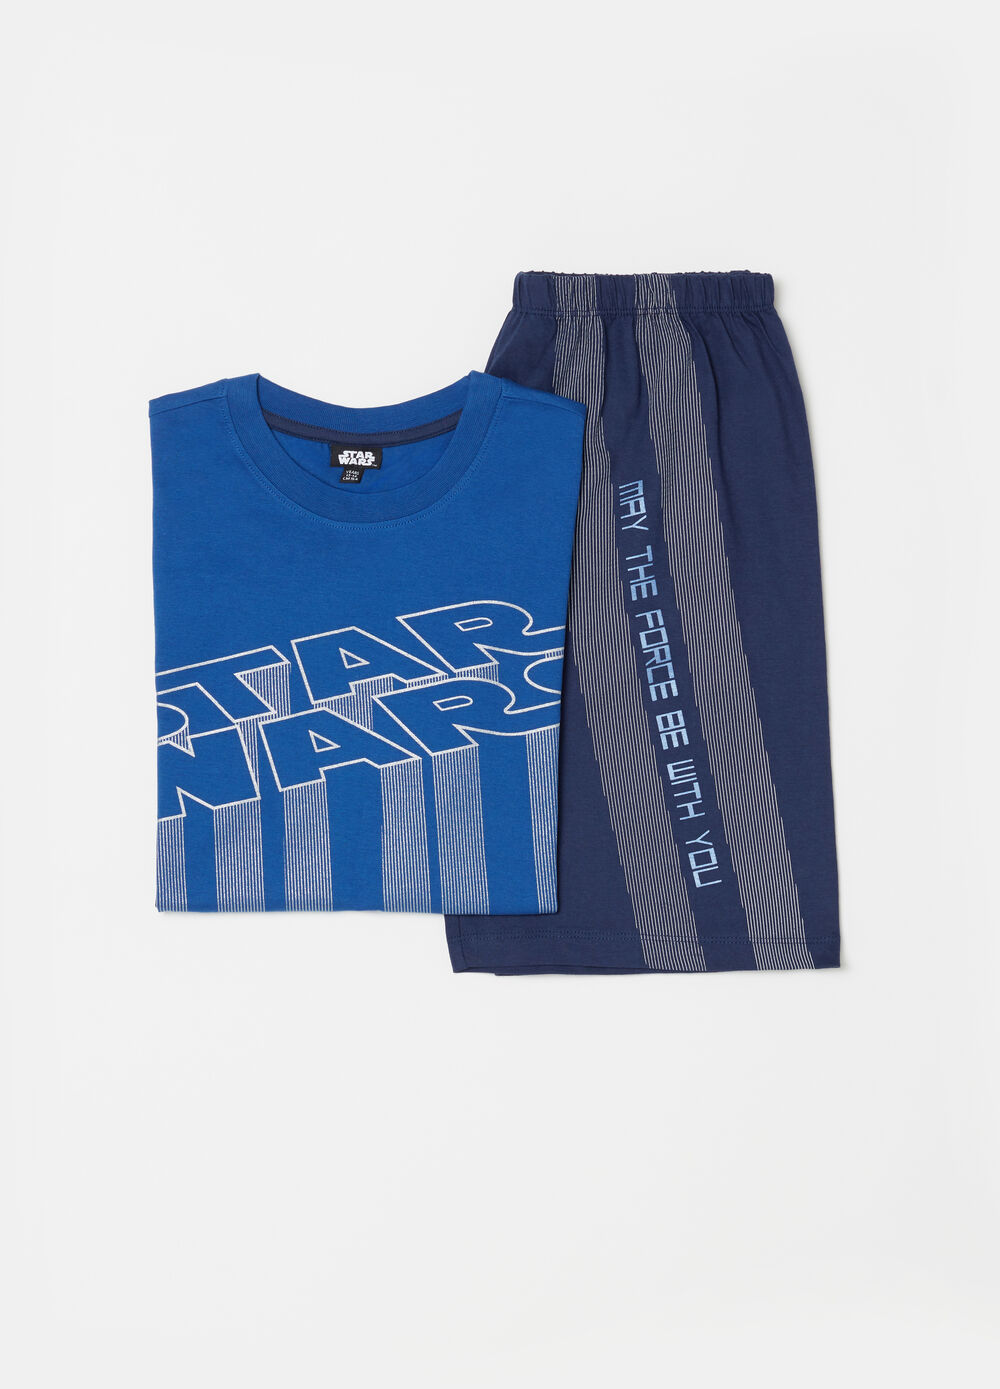 Star Wars pyjama top and shorts